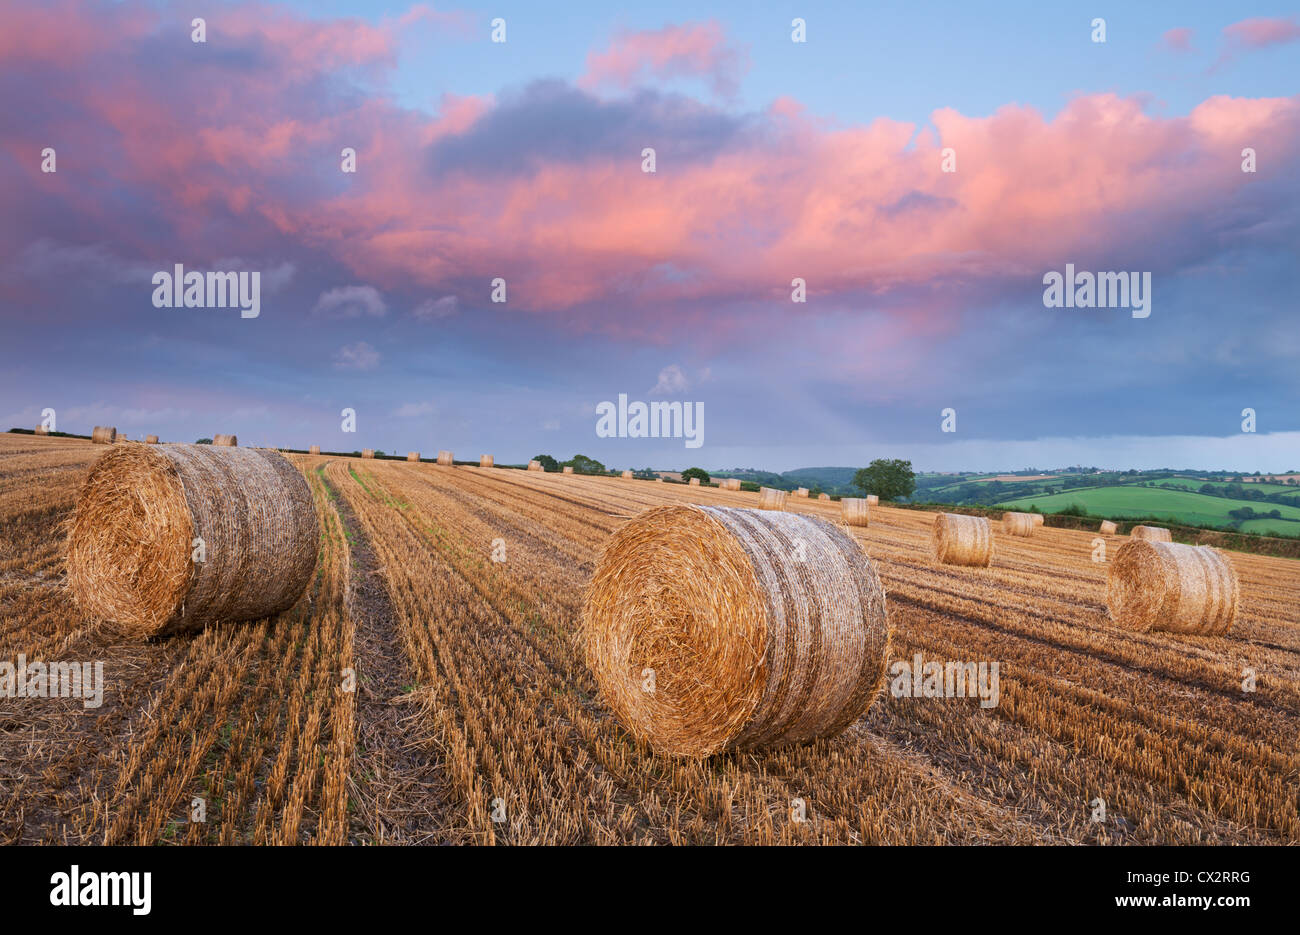 Straw Bales in a field beneath a pink sunset sky, Eastington, Devon, England. Summer (August) 2012. - Stock Image